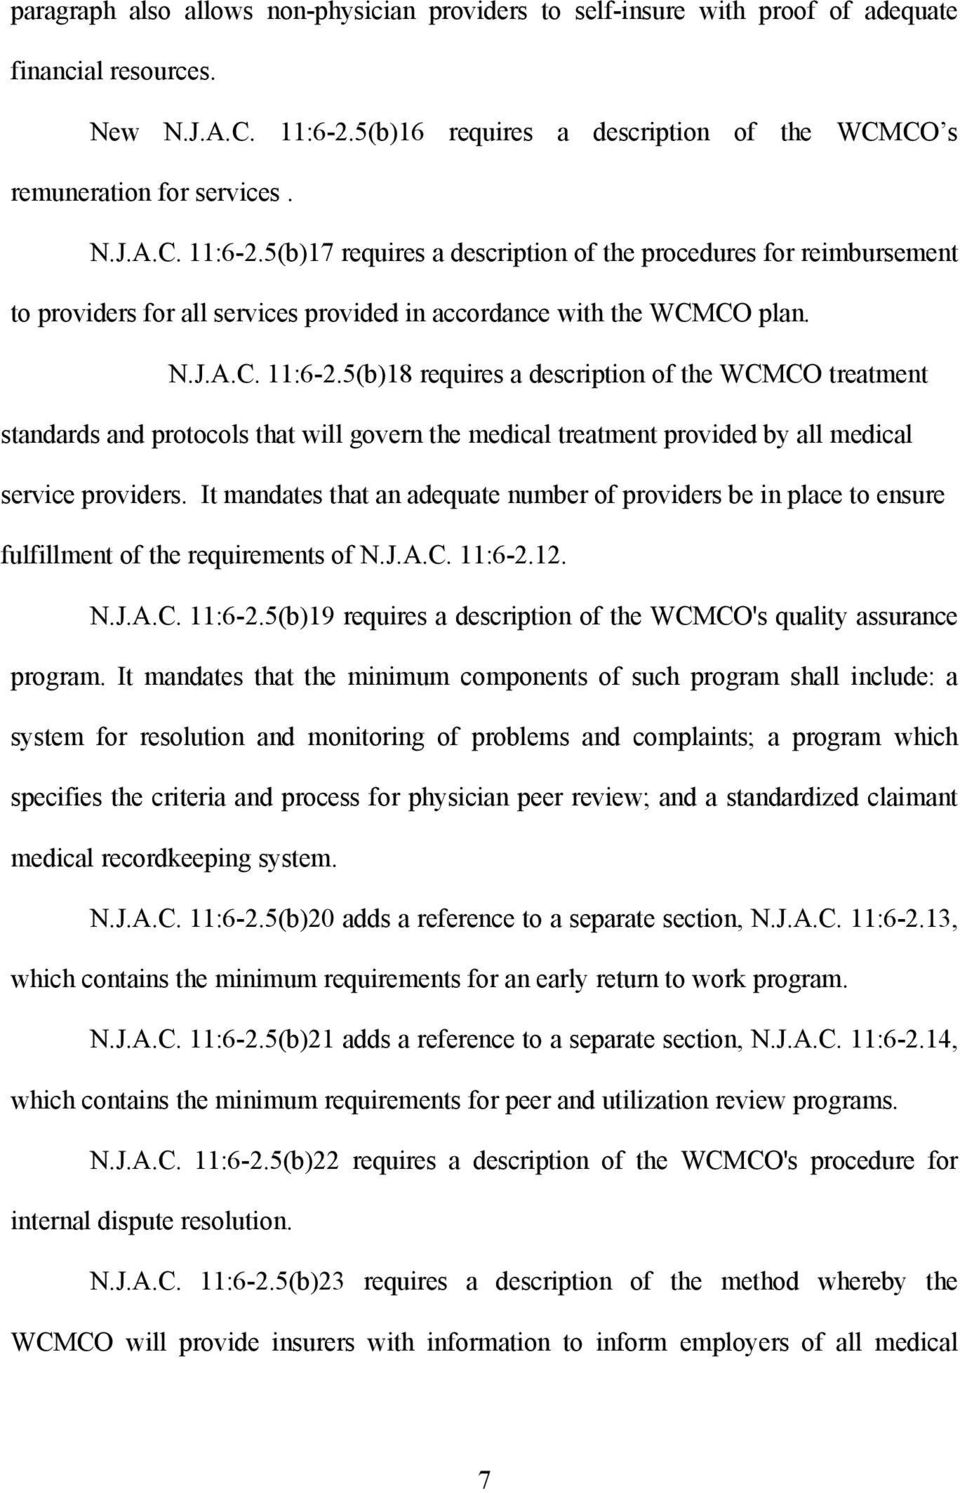 5(b)17 requires a description of the procedures for reimbursement to providers for all services provided in accordance with the WCMCO plan. N.J.A.C. 11:6-2.